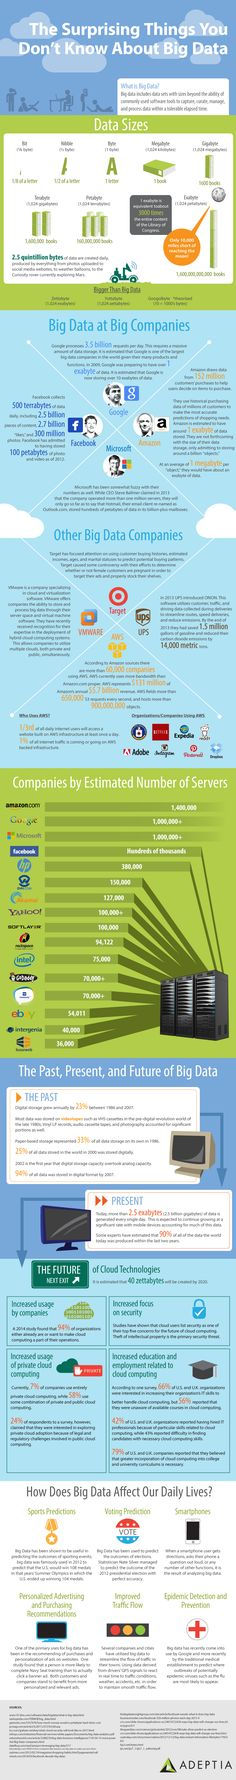 Big Data: What You Didn't Know